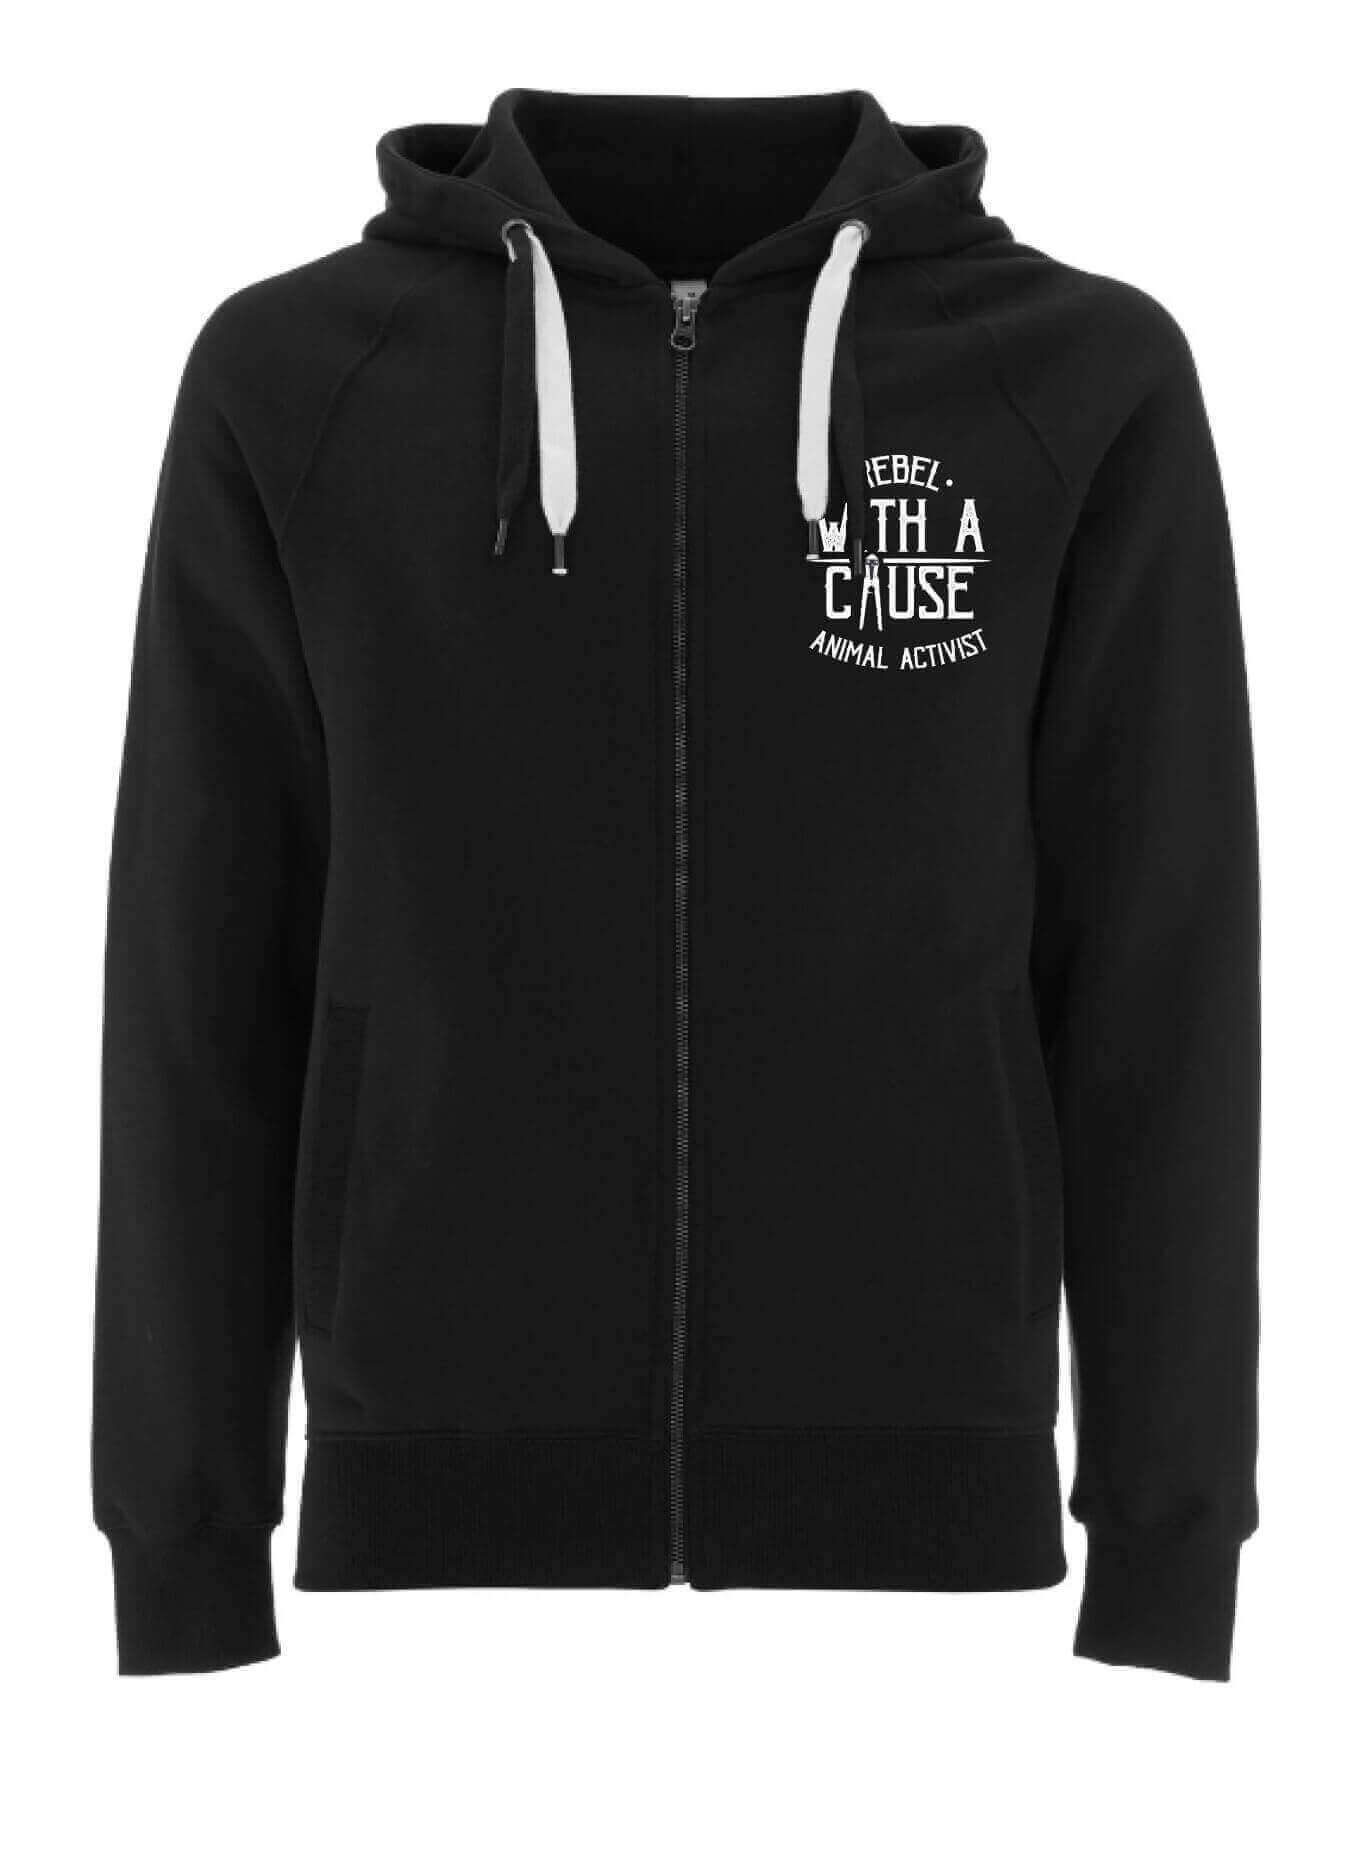 UNISEX Zip Through Hoodie : Rebel With A Cause